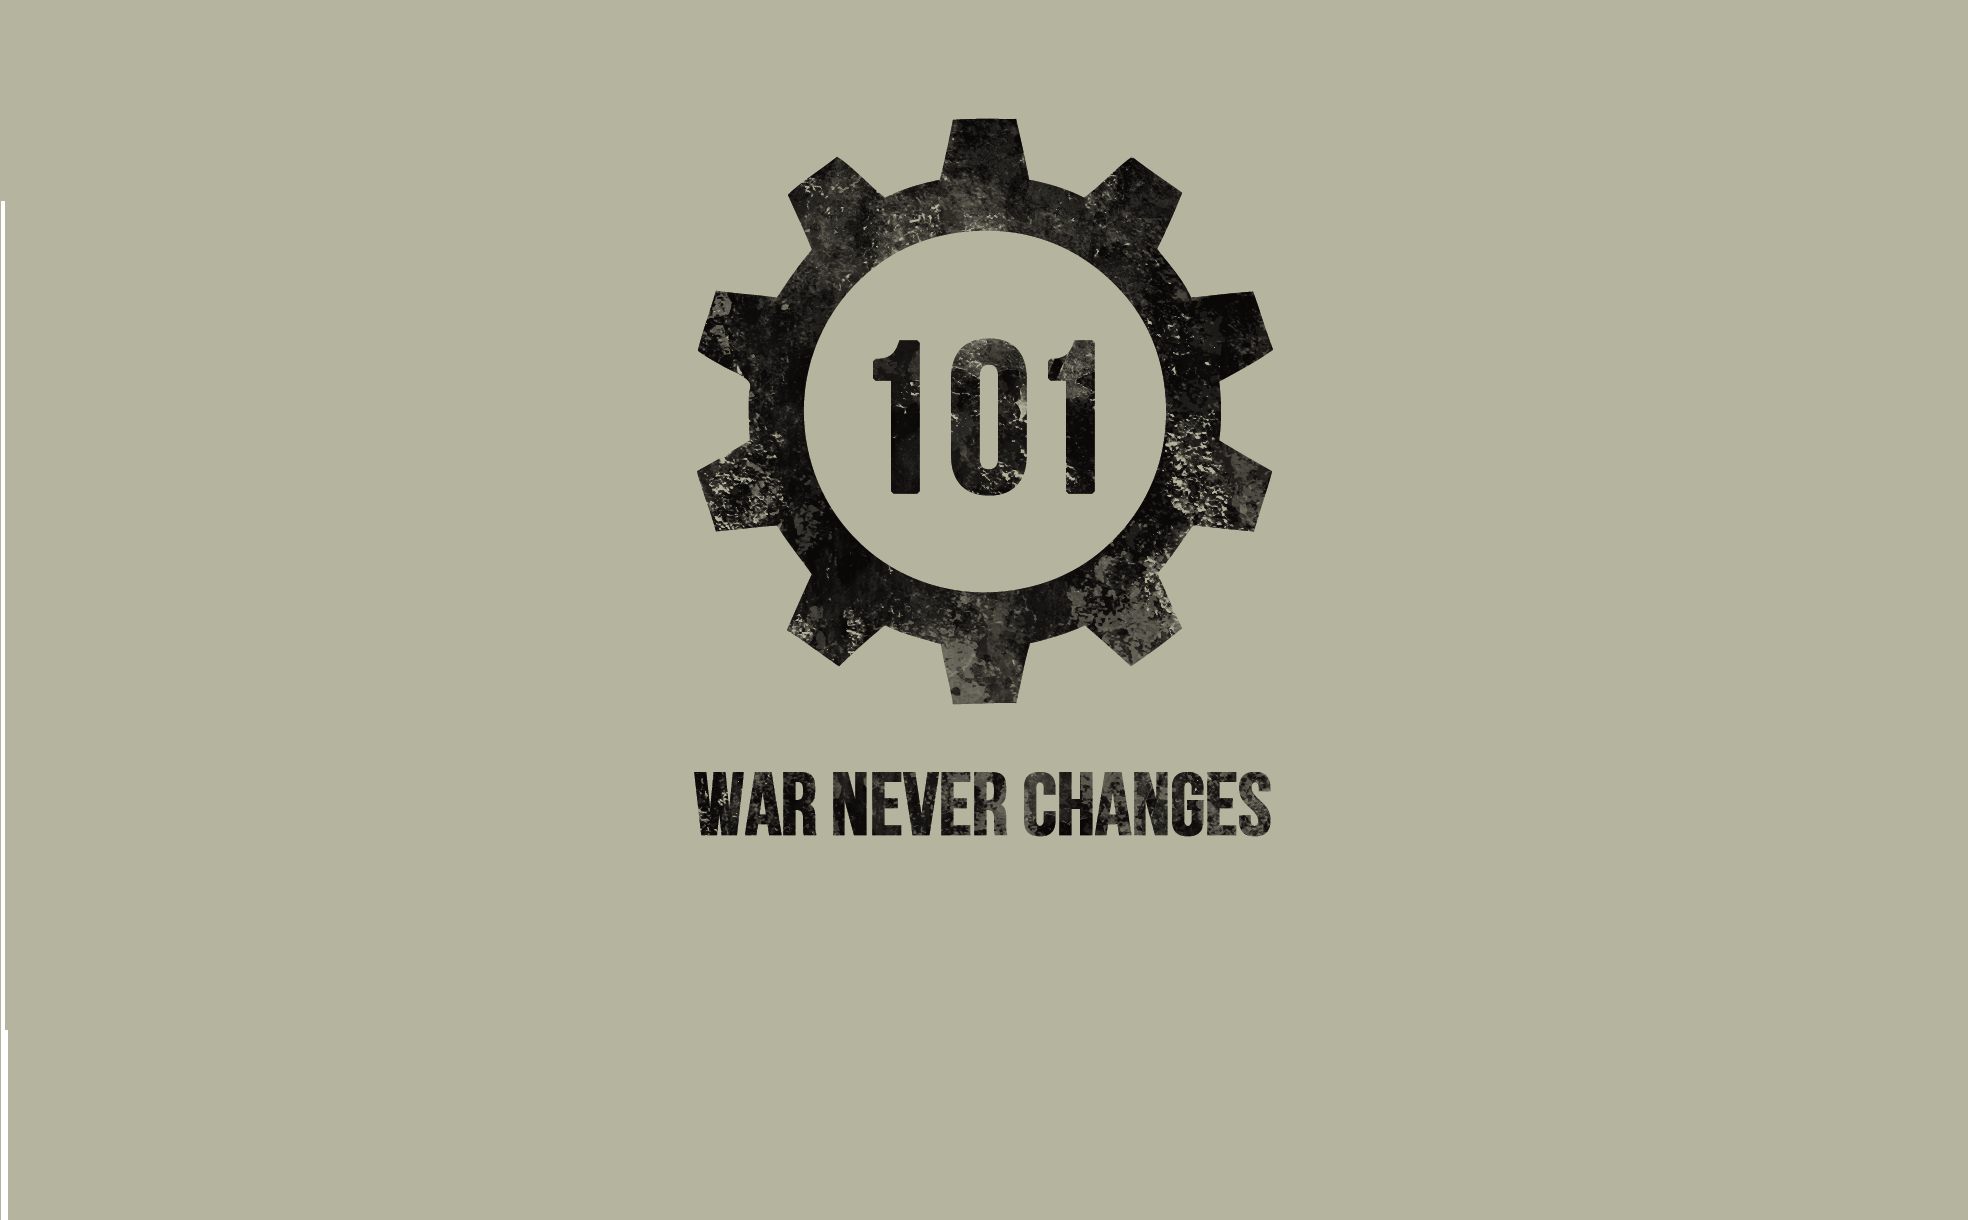 A Smashing Collection Of Wallpapers Fallout Tattoo Nerdy Wallpaper Never Change